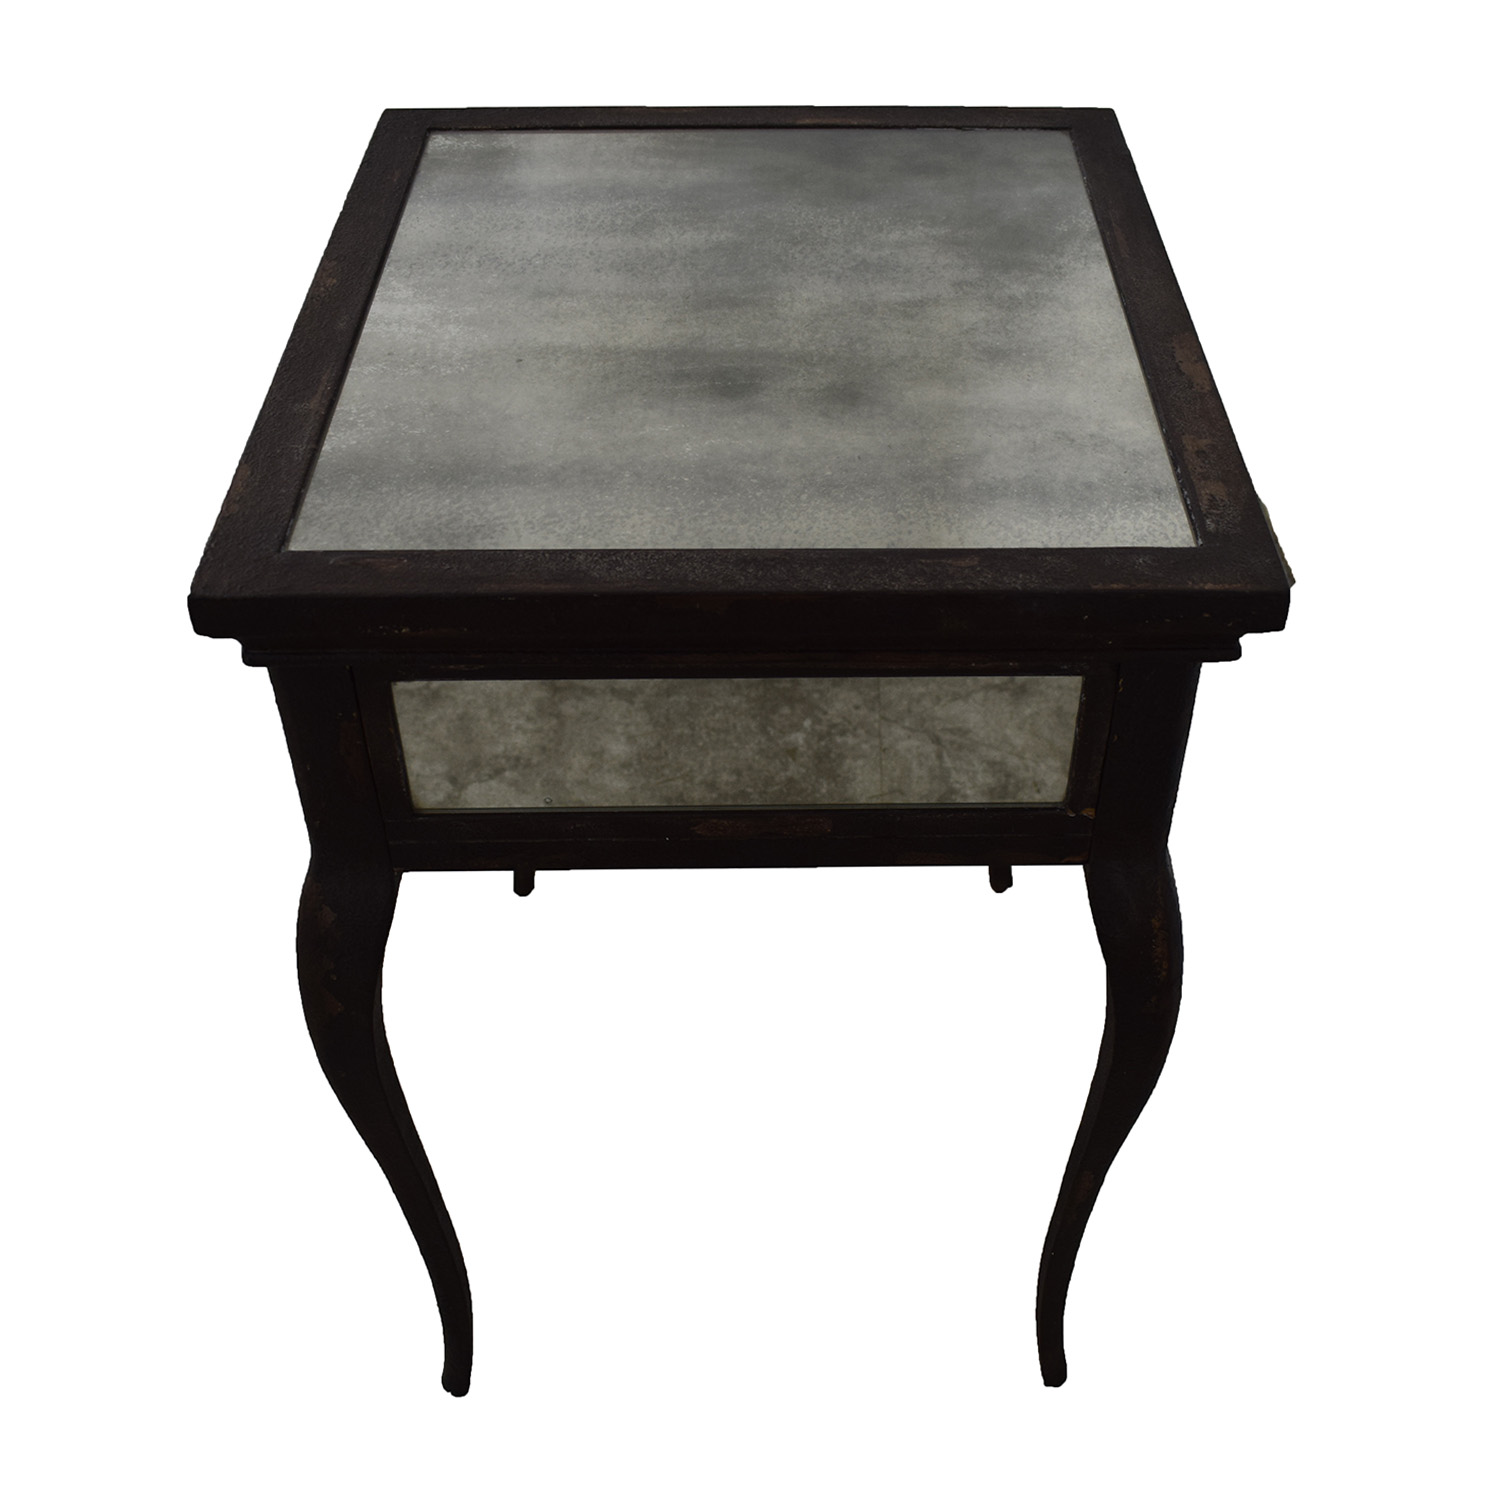 Uttermost Uttermost Smoked Mirror and Metal End Table with One Drawer on sale